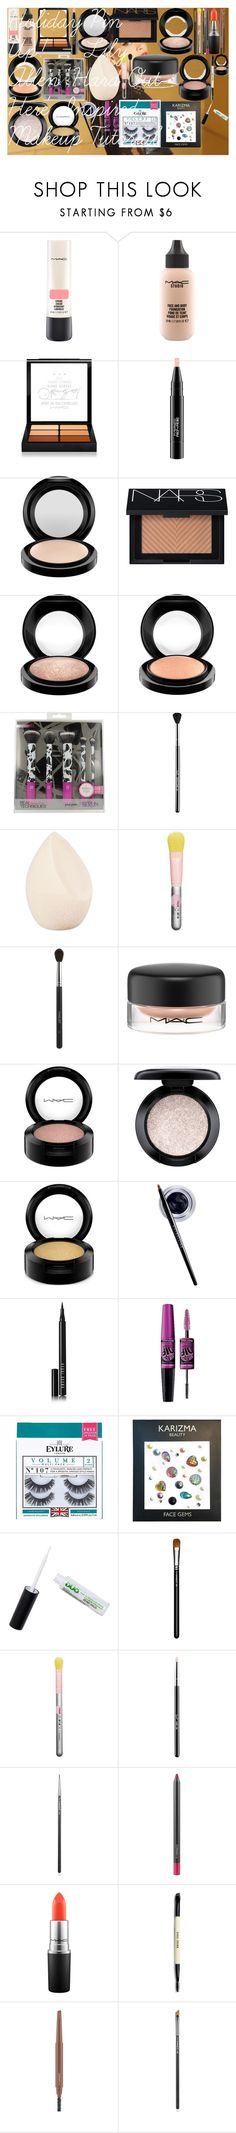 """""""Holiday Pin Up! - Lily Allen 'Hard Out Here' Inspired Makeup Tutorial"""" by oroartye-1 on Polyvore featuring beauty, MAC Cosmetics, NARS Cosmetics, Sigma, Christian Dior, Inglot, Maybelline, Bobbi Brown Cosmetics and eylure"""